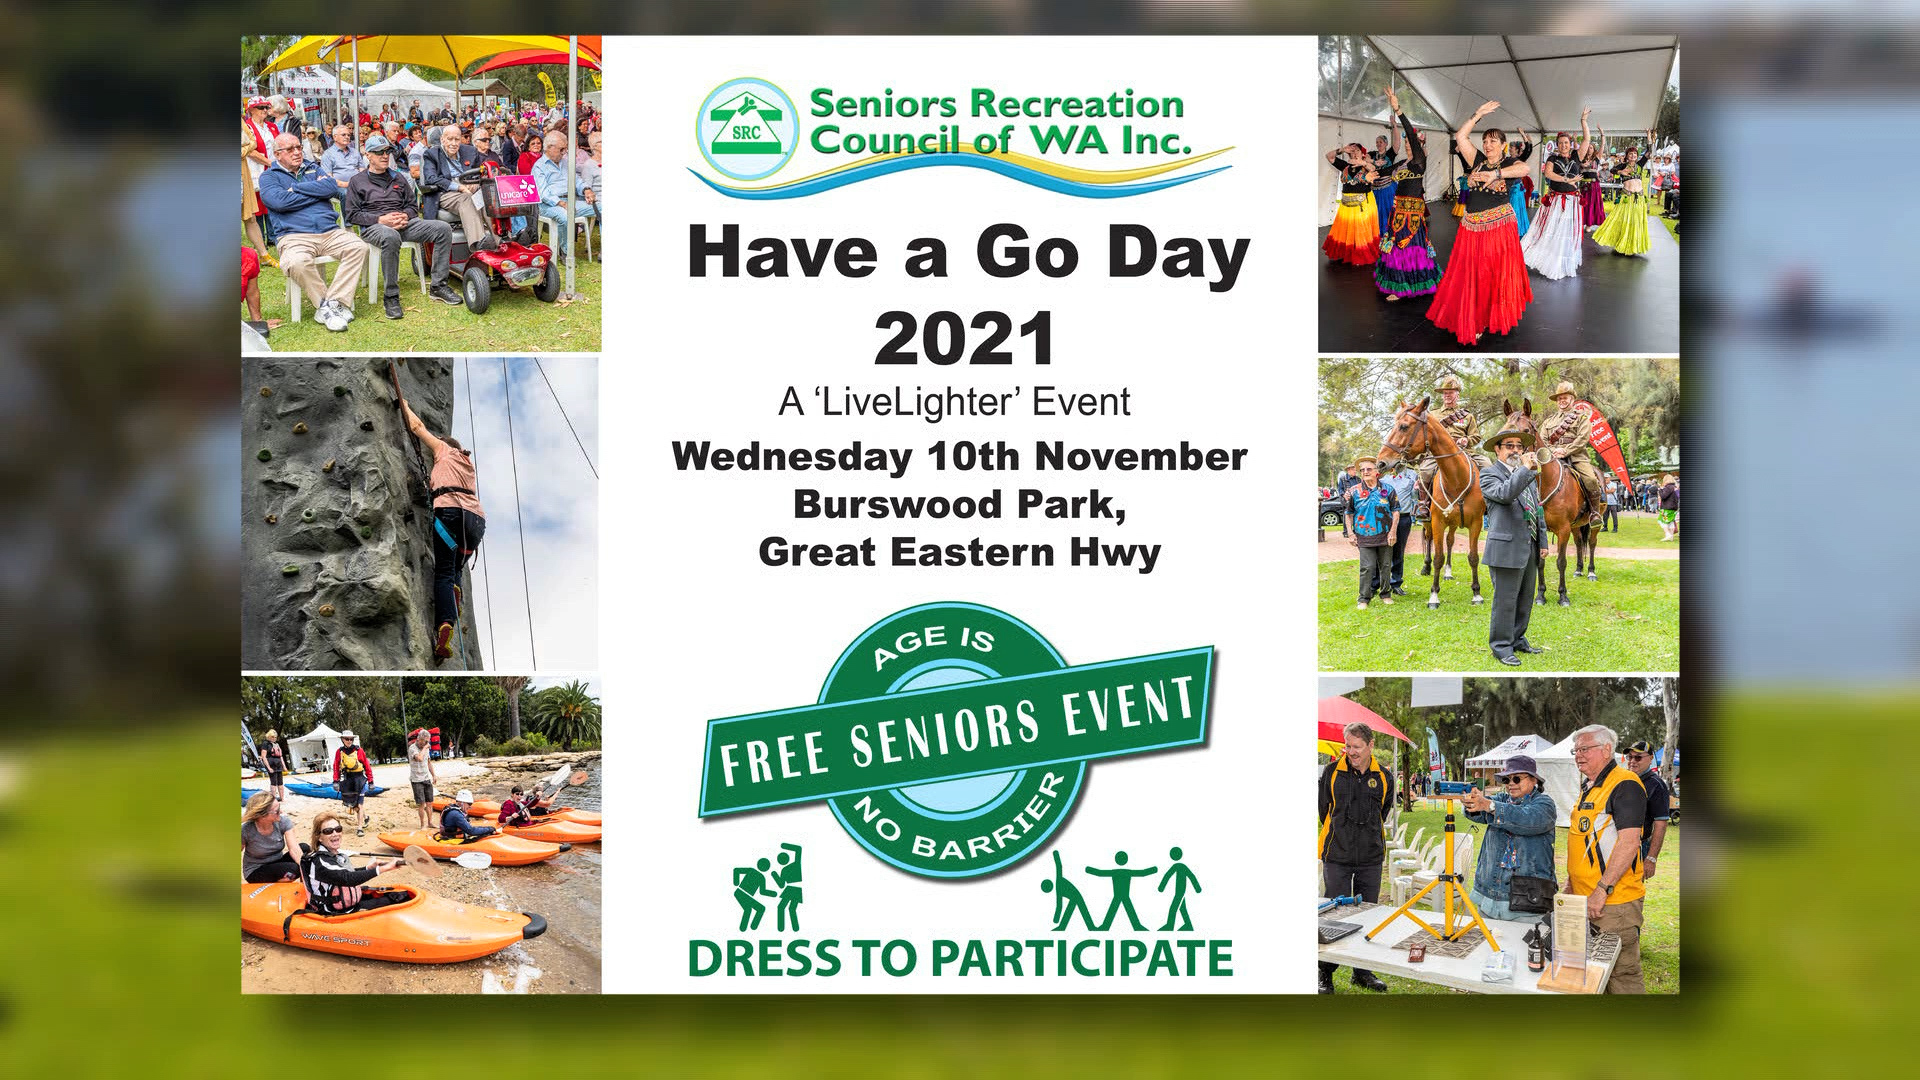 Have a Go Day a LiveLighter Event 2021